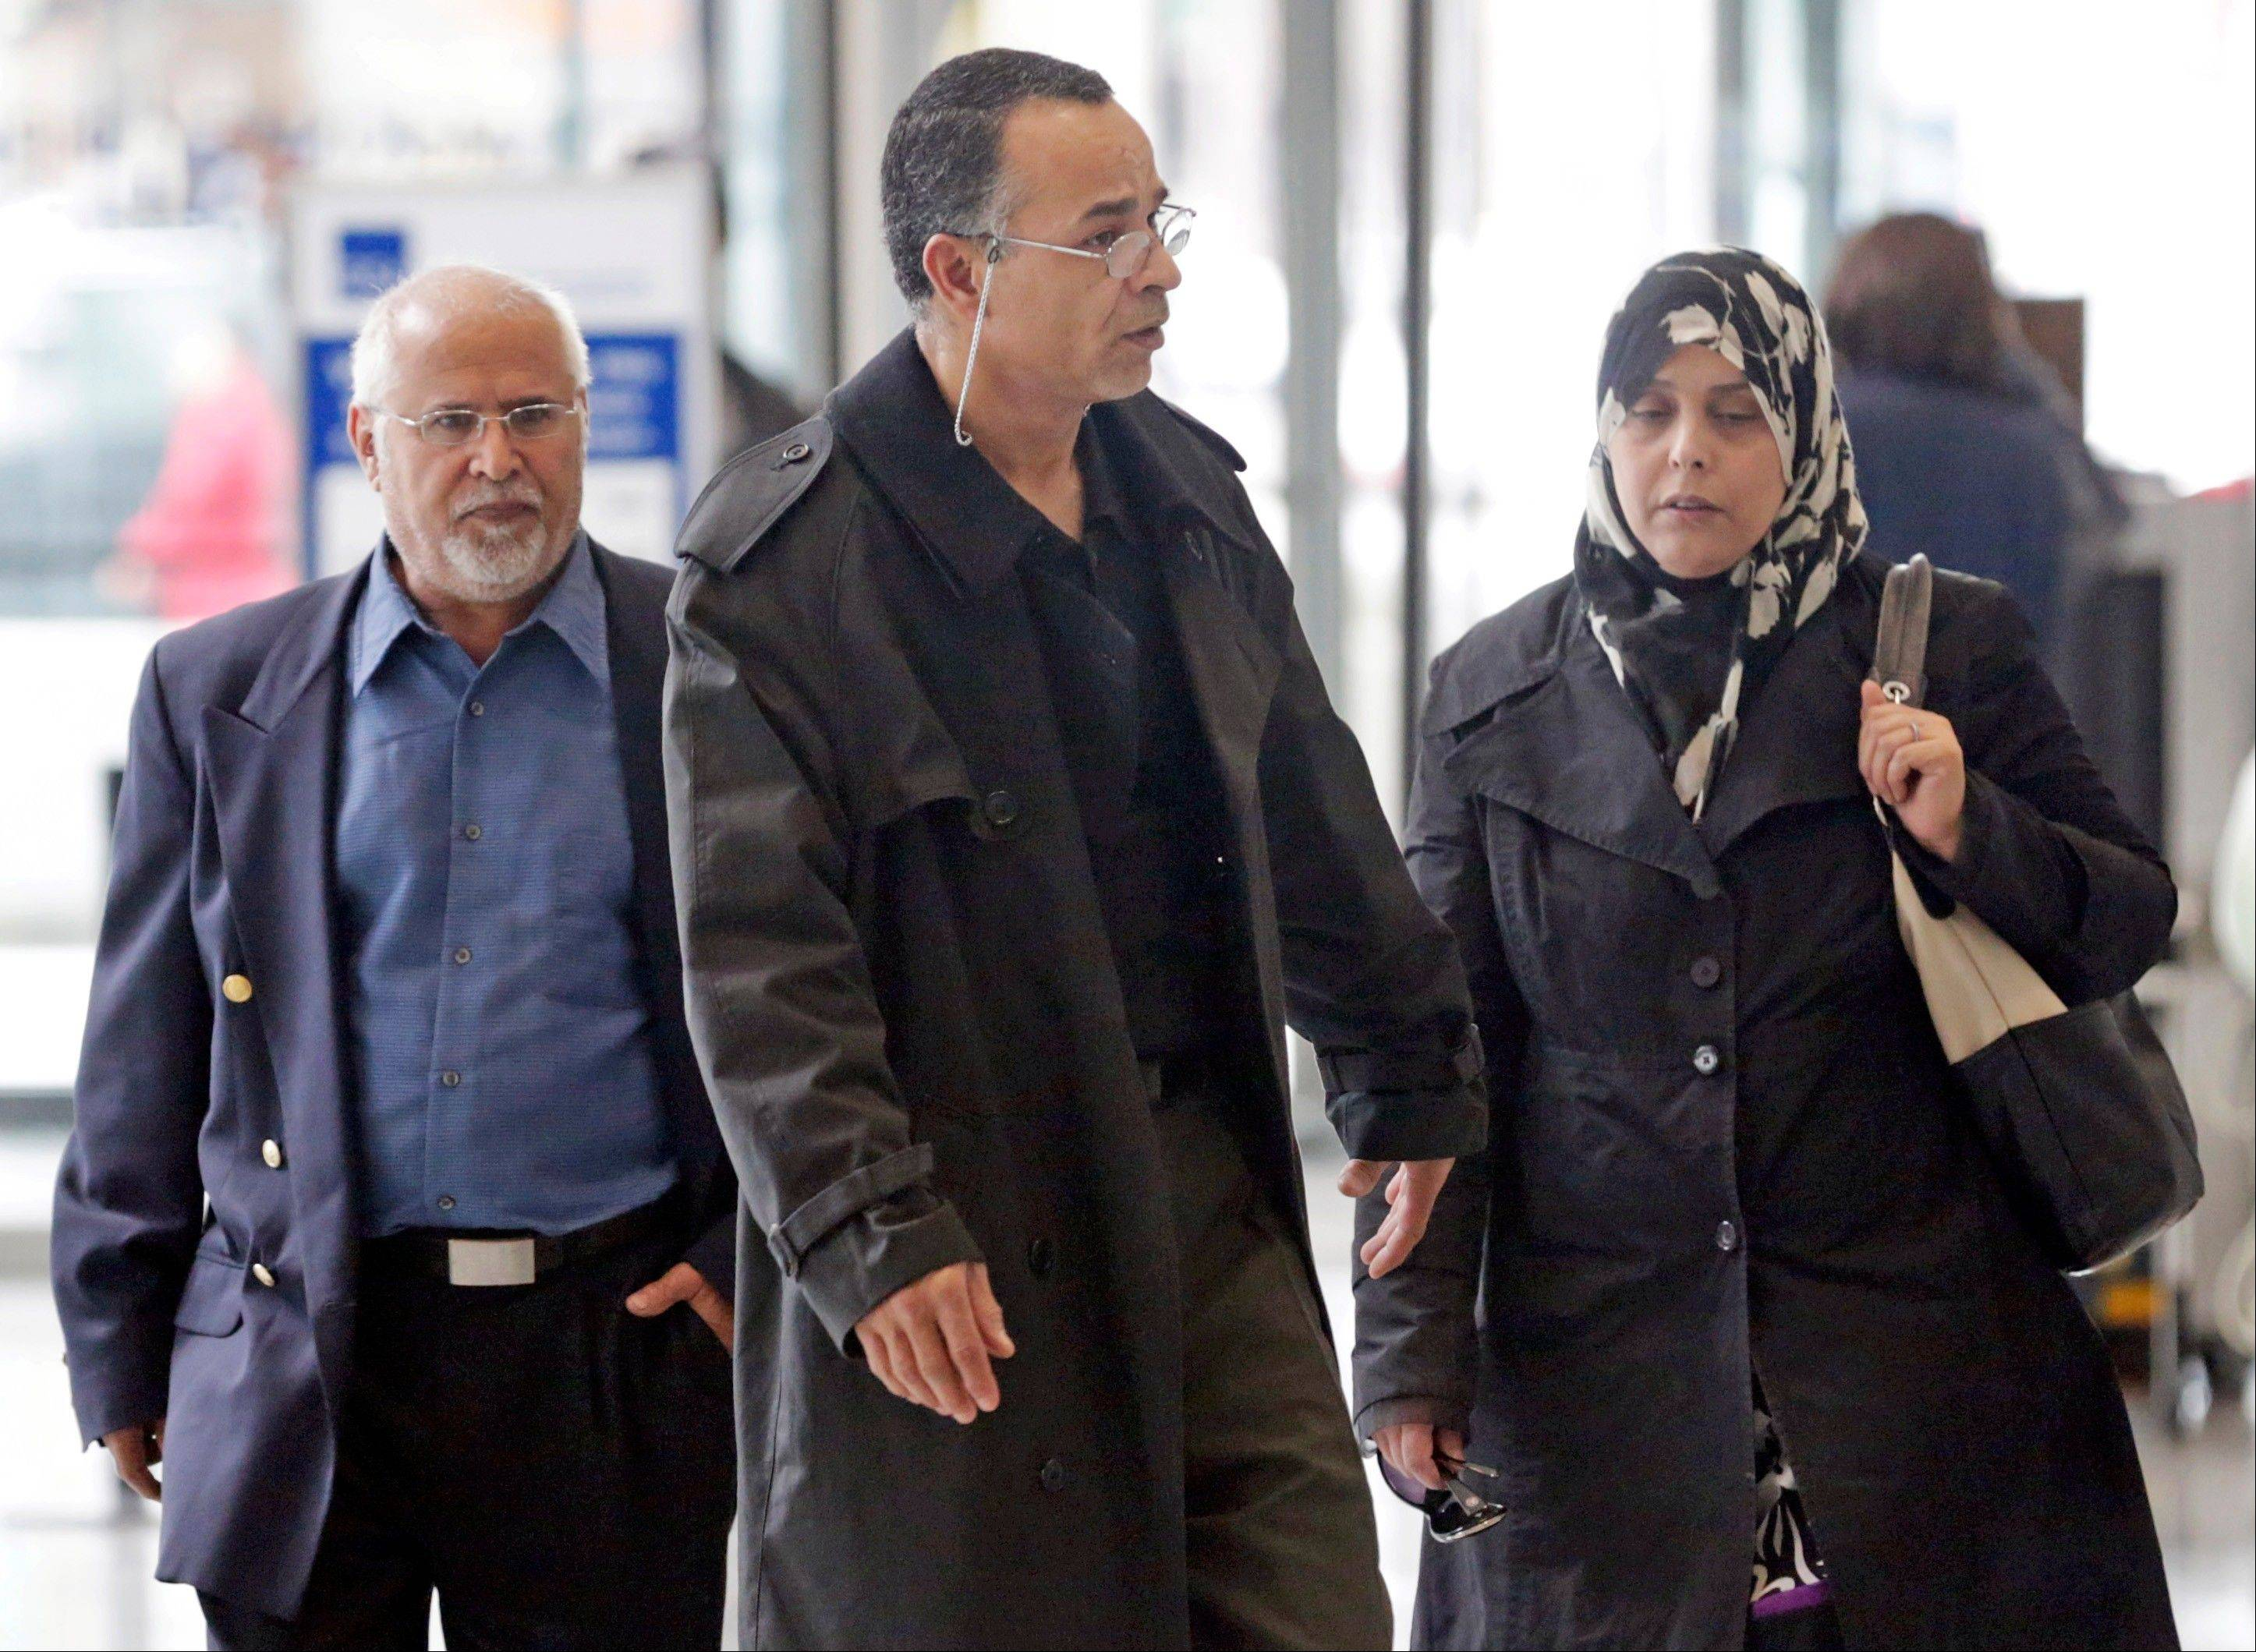 Family members of 18 year-old Abdella Ahmad Tounisi, including his father, Ahmad Tounisi, center, leave the Dirksen Federal Building on Tuesday in Chicago. During a detention hearing, a federal judge said he'd delay a decision on the Aurora teen's bond until next week.